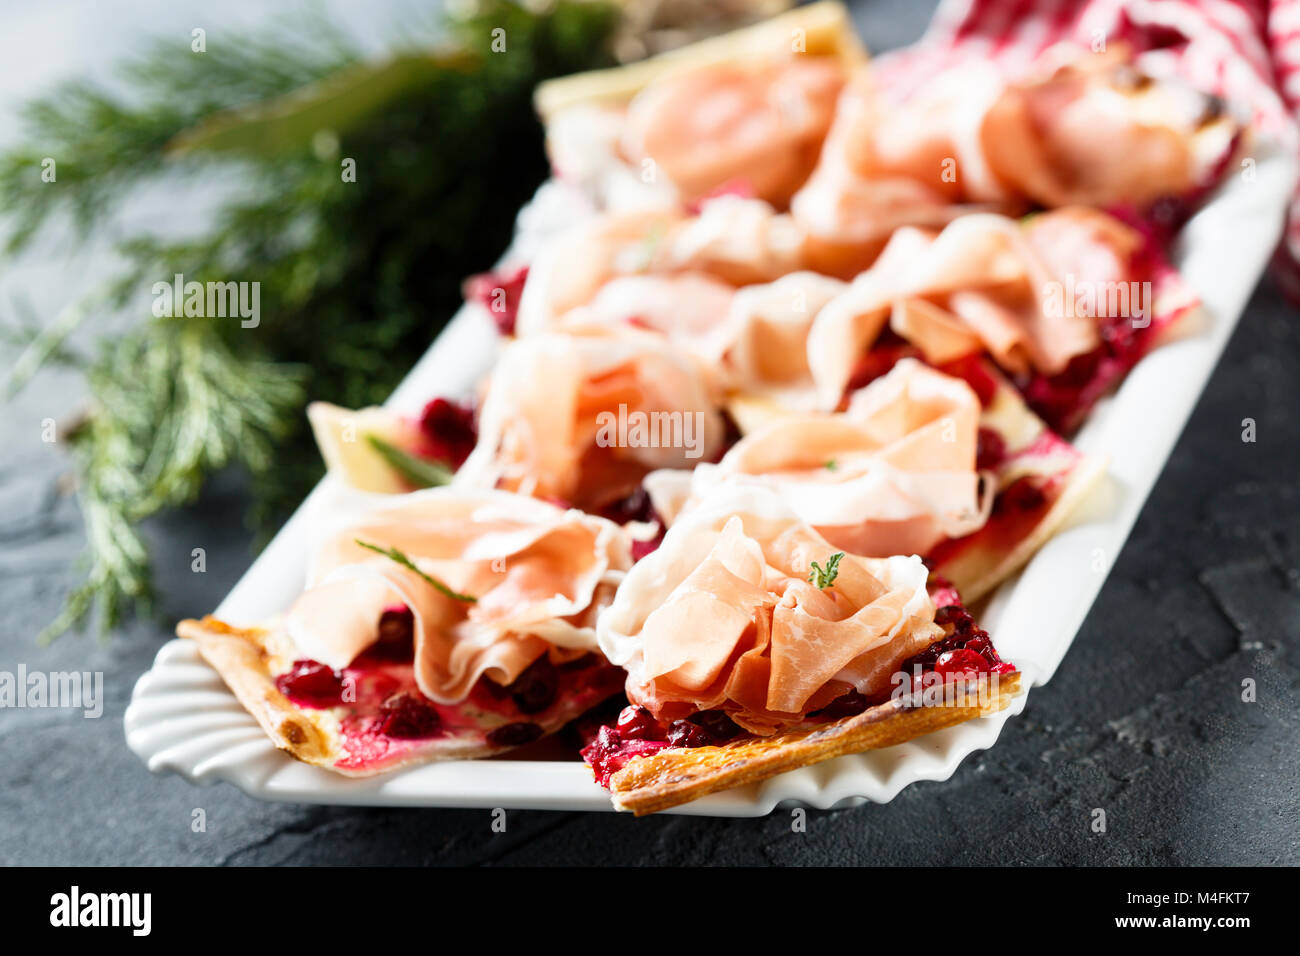 Homemade savory pie with cranberry - Stock Image